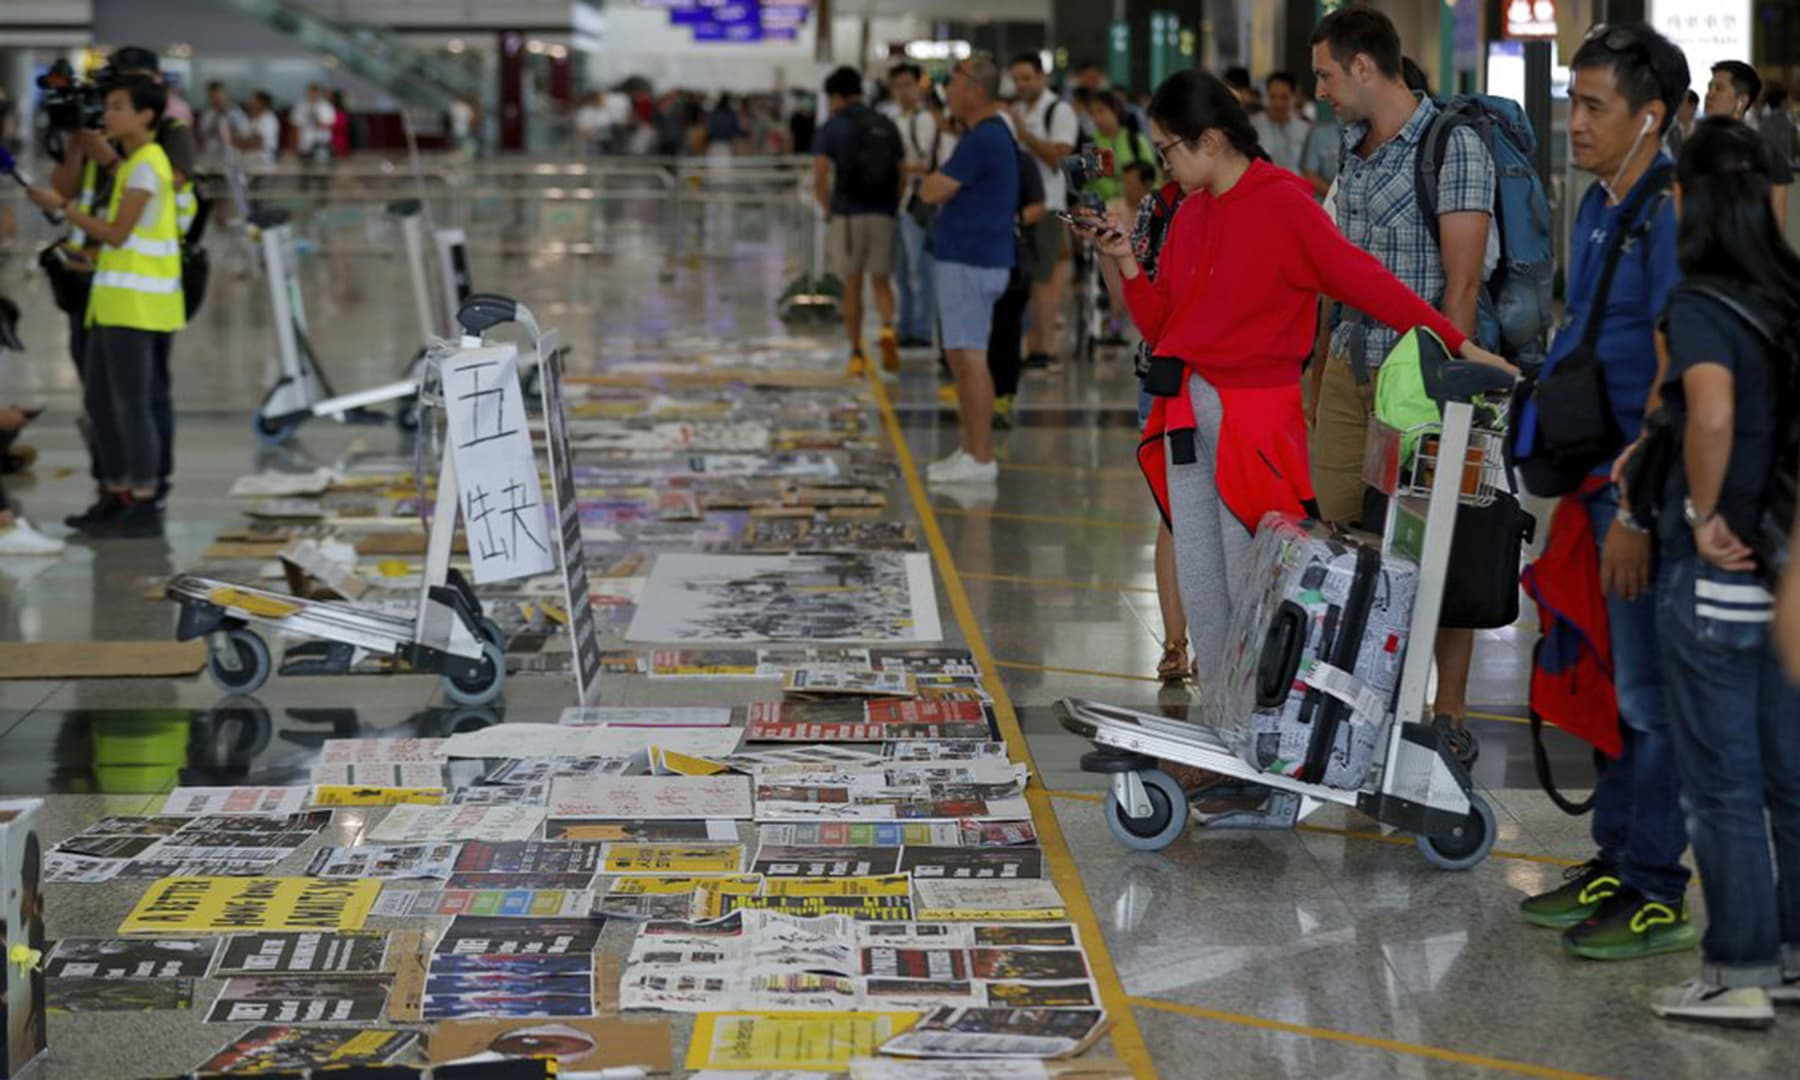 Travellers look at placards and posters placed by protesters at the airport in Hong Kong on Aug 14, 2019. — AP